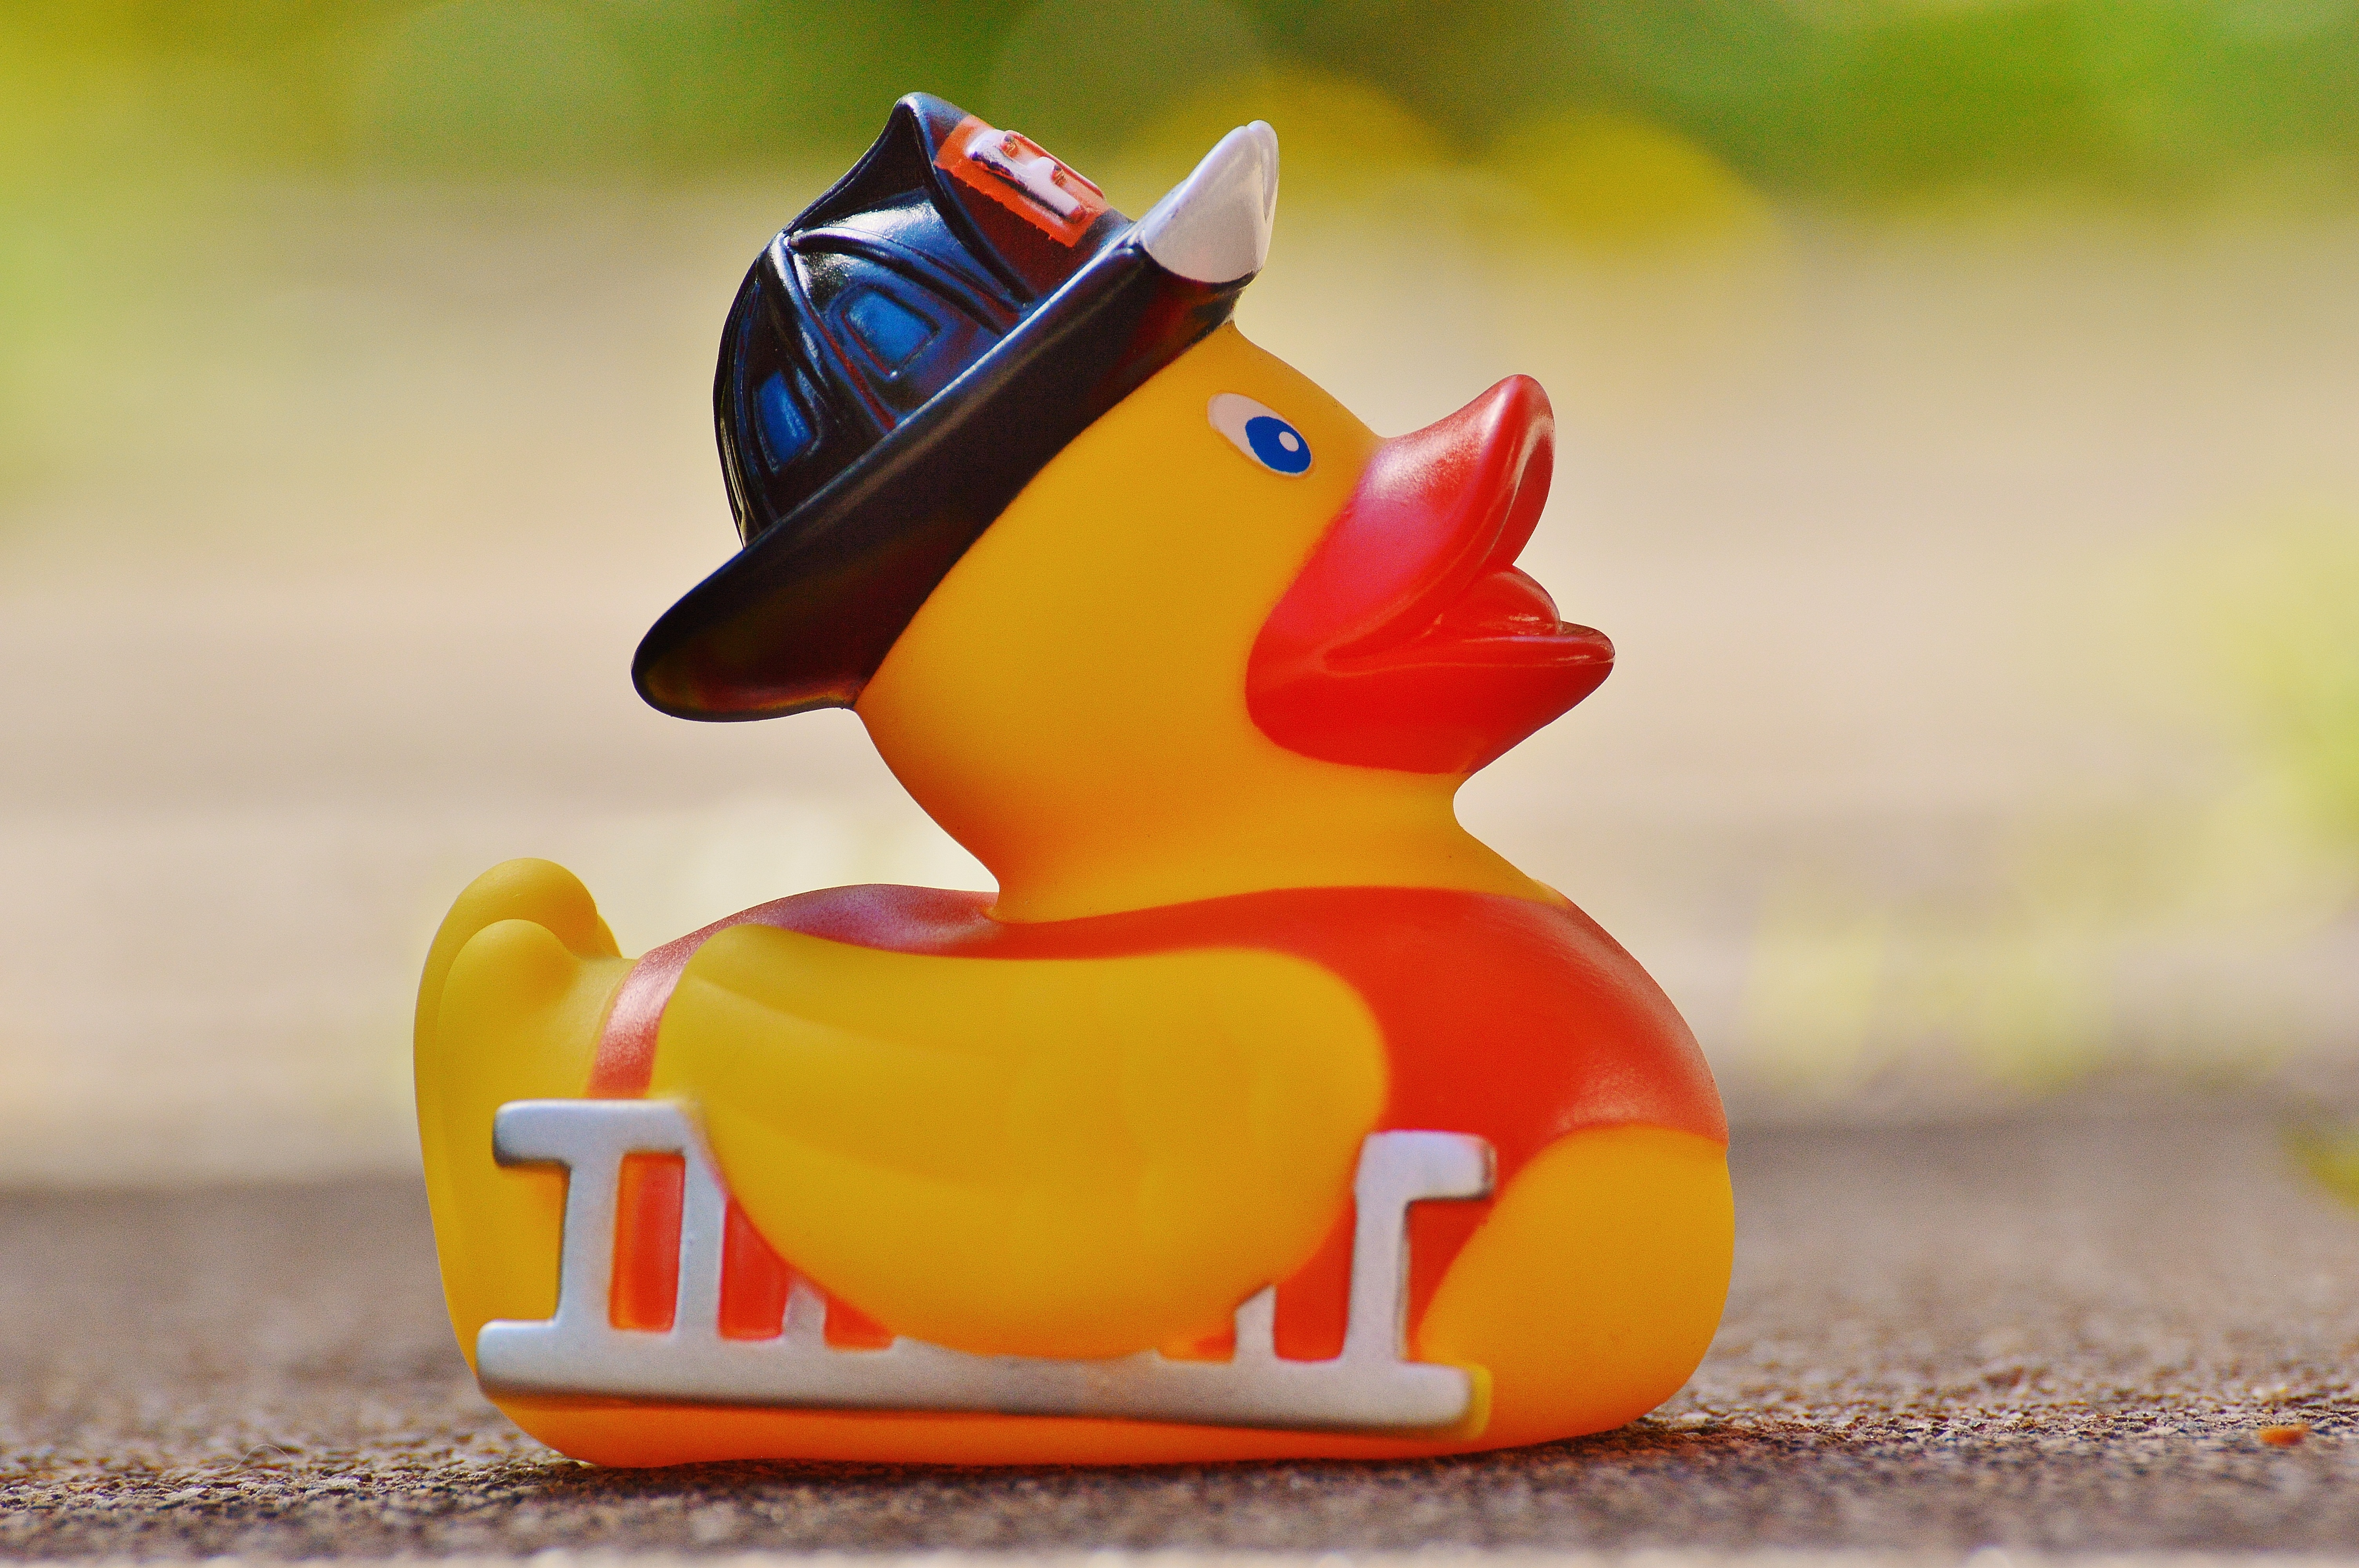 117683 download wallpaper Miscellanea, Miscellaneous, Toy, Duck, Rubber Duck screensavers and pictures for free